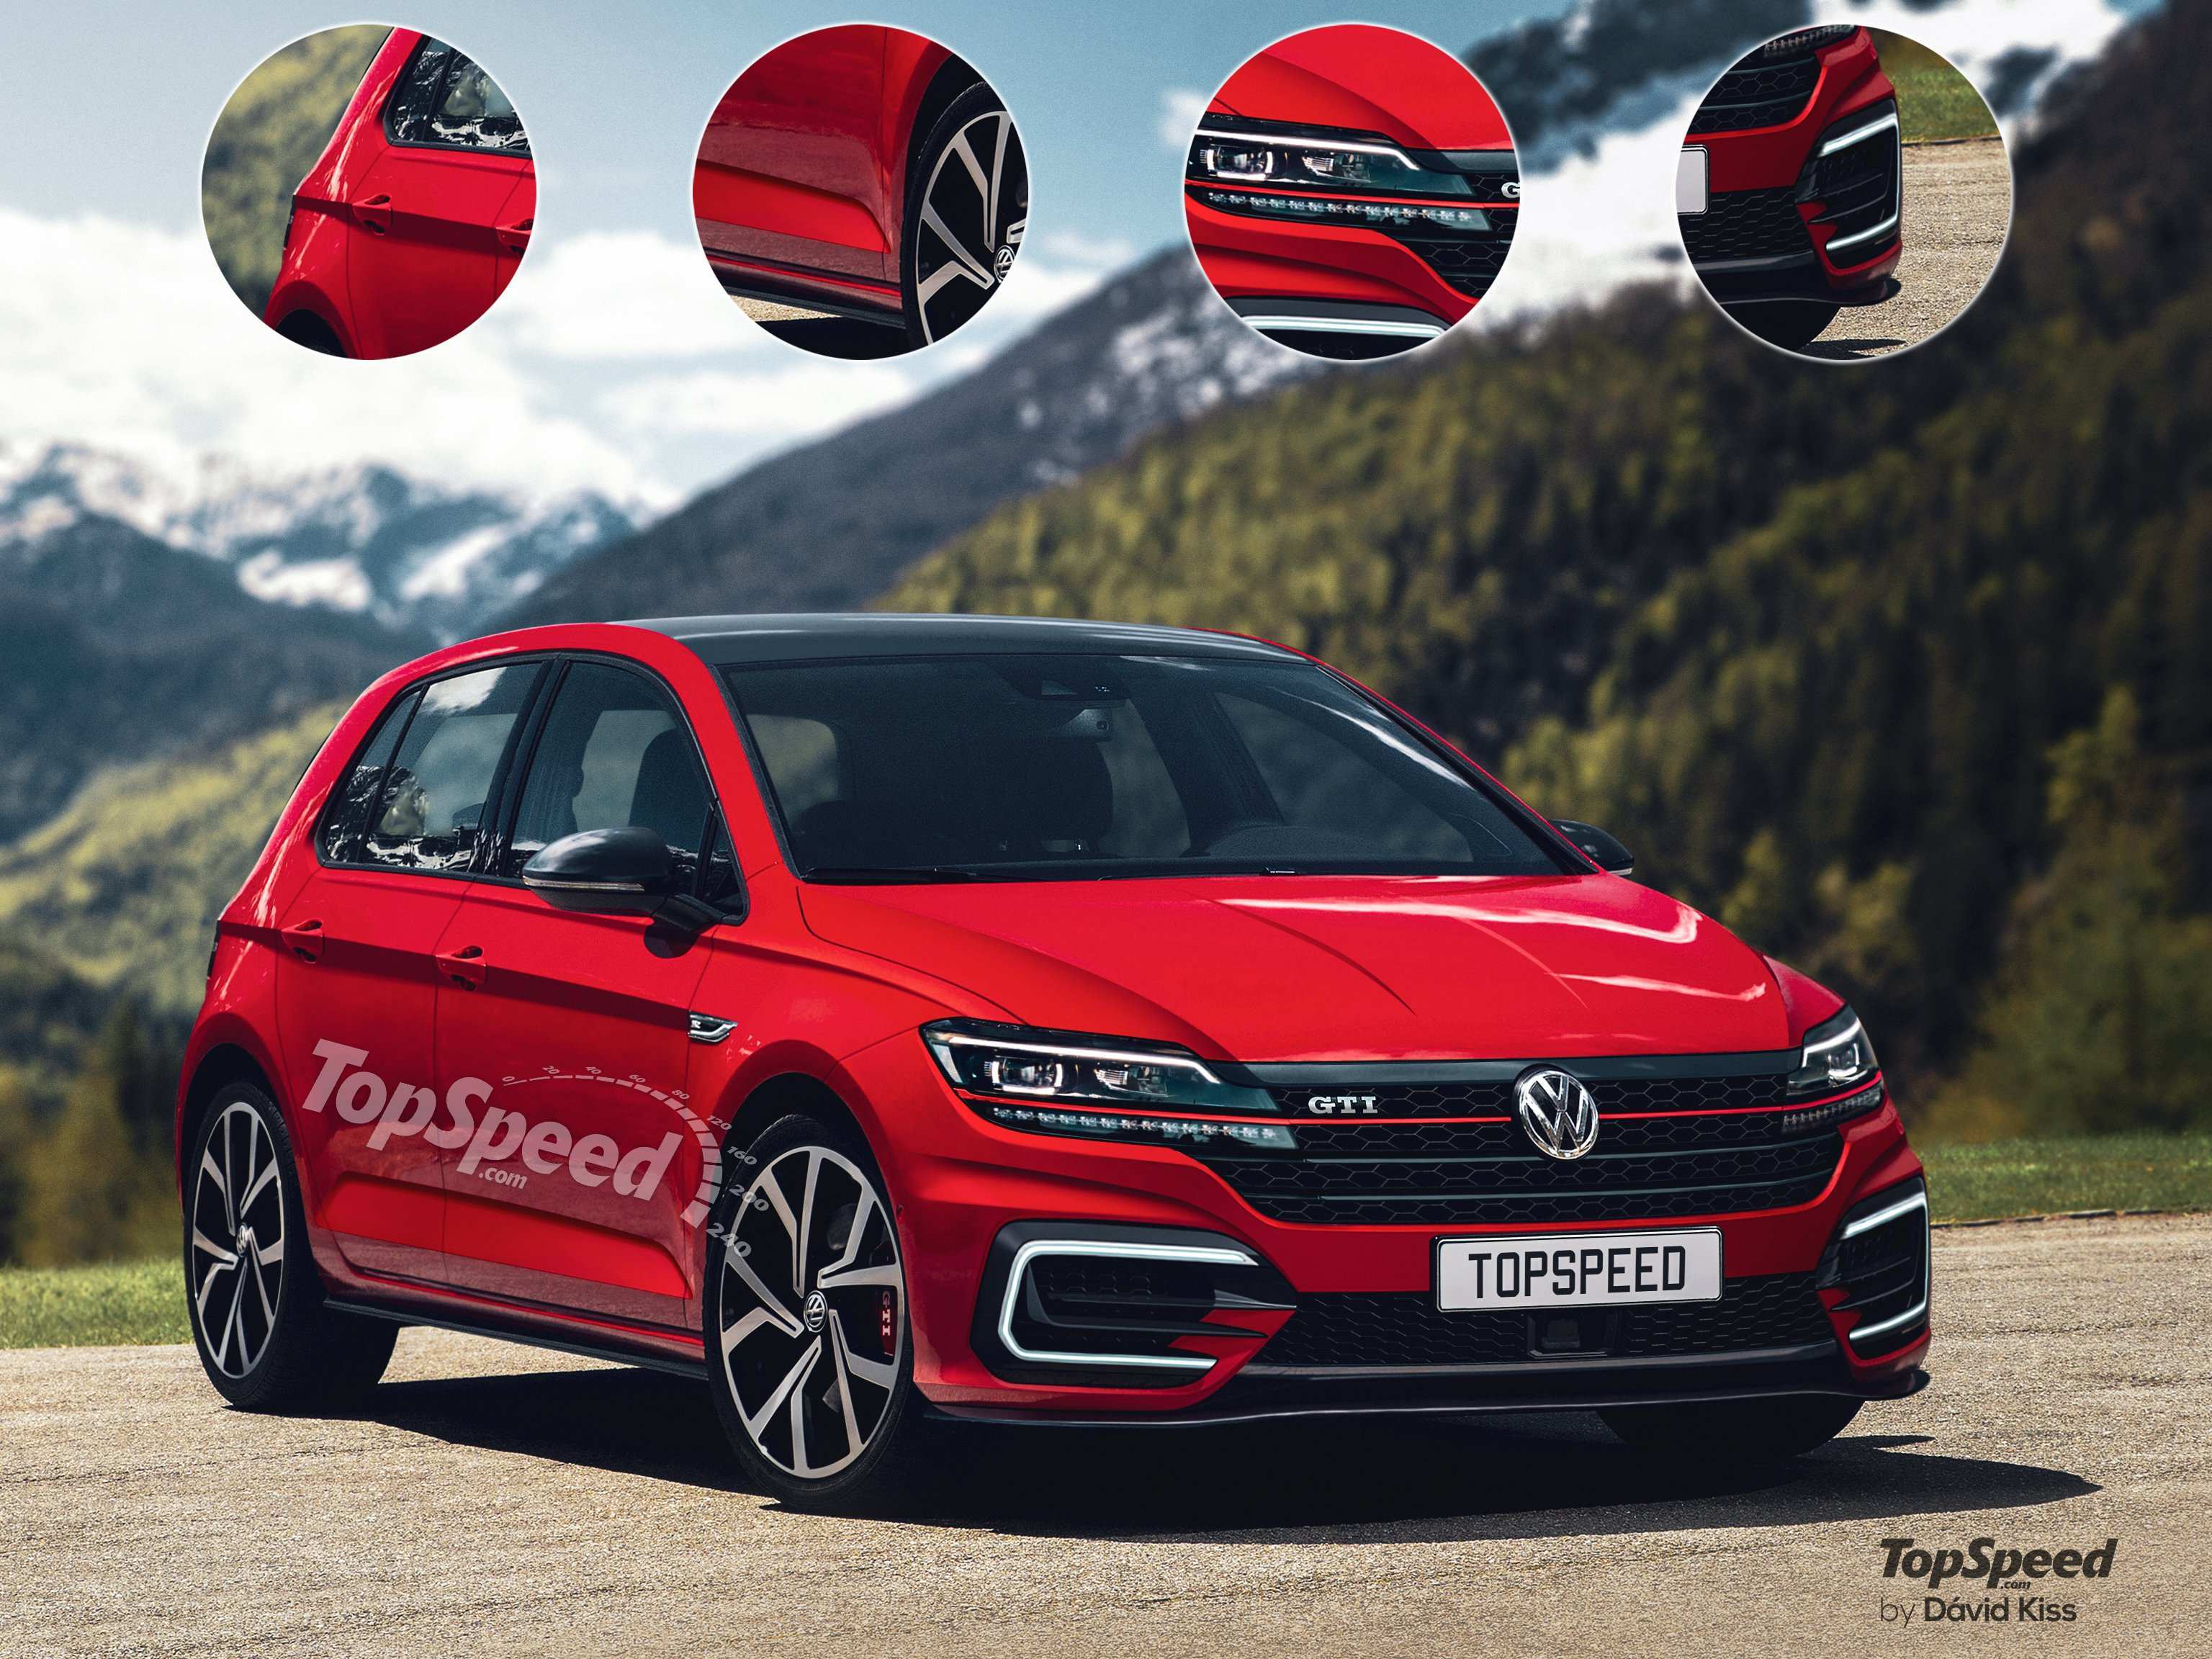 18 Concept of VW Golf Gti 2020 Model with VW Golf Gti 2020